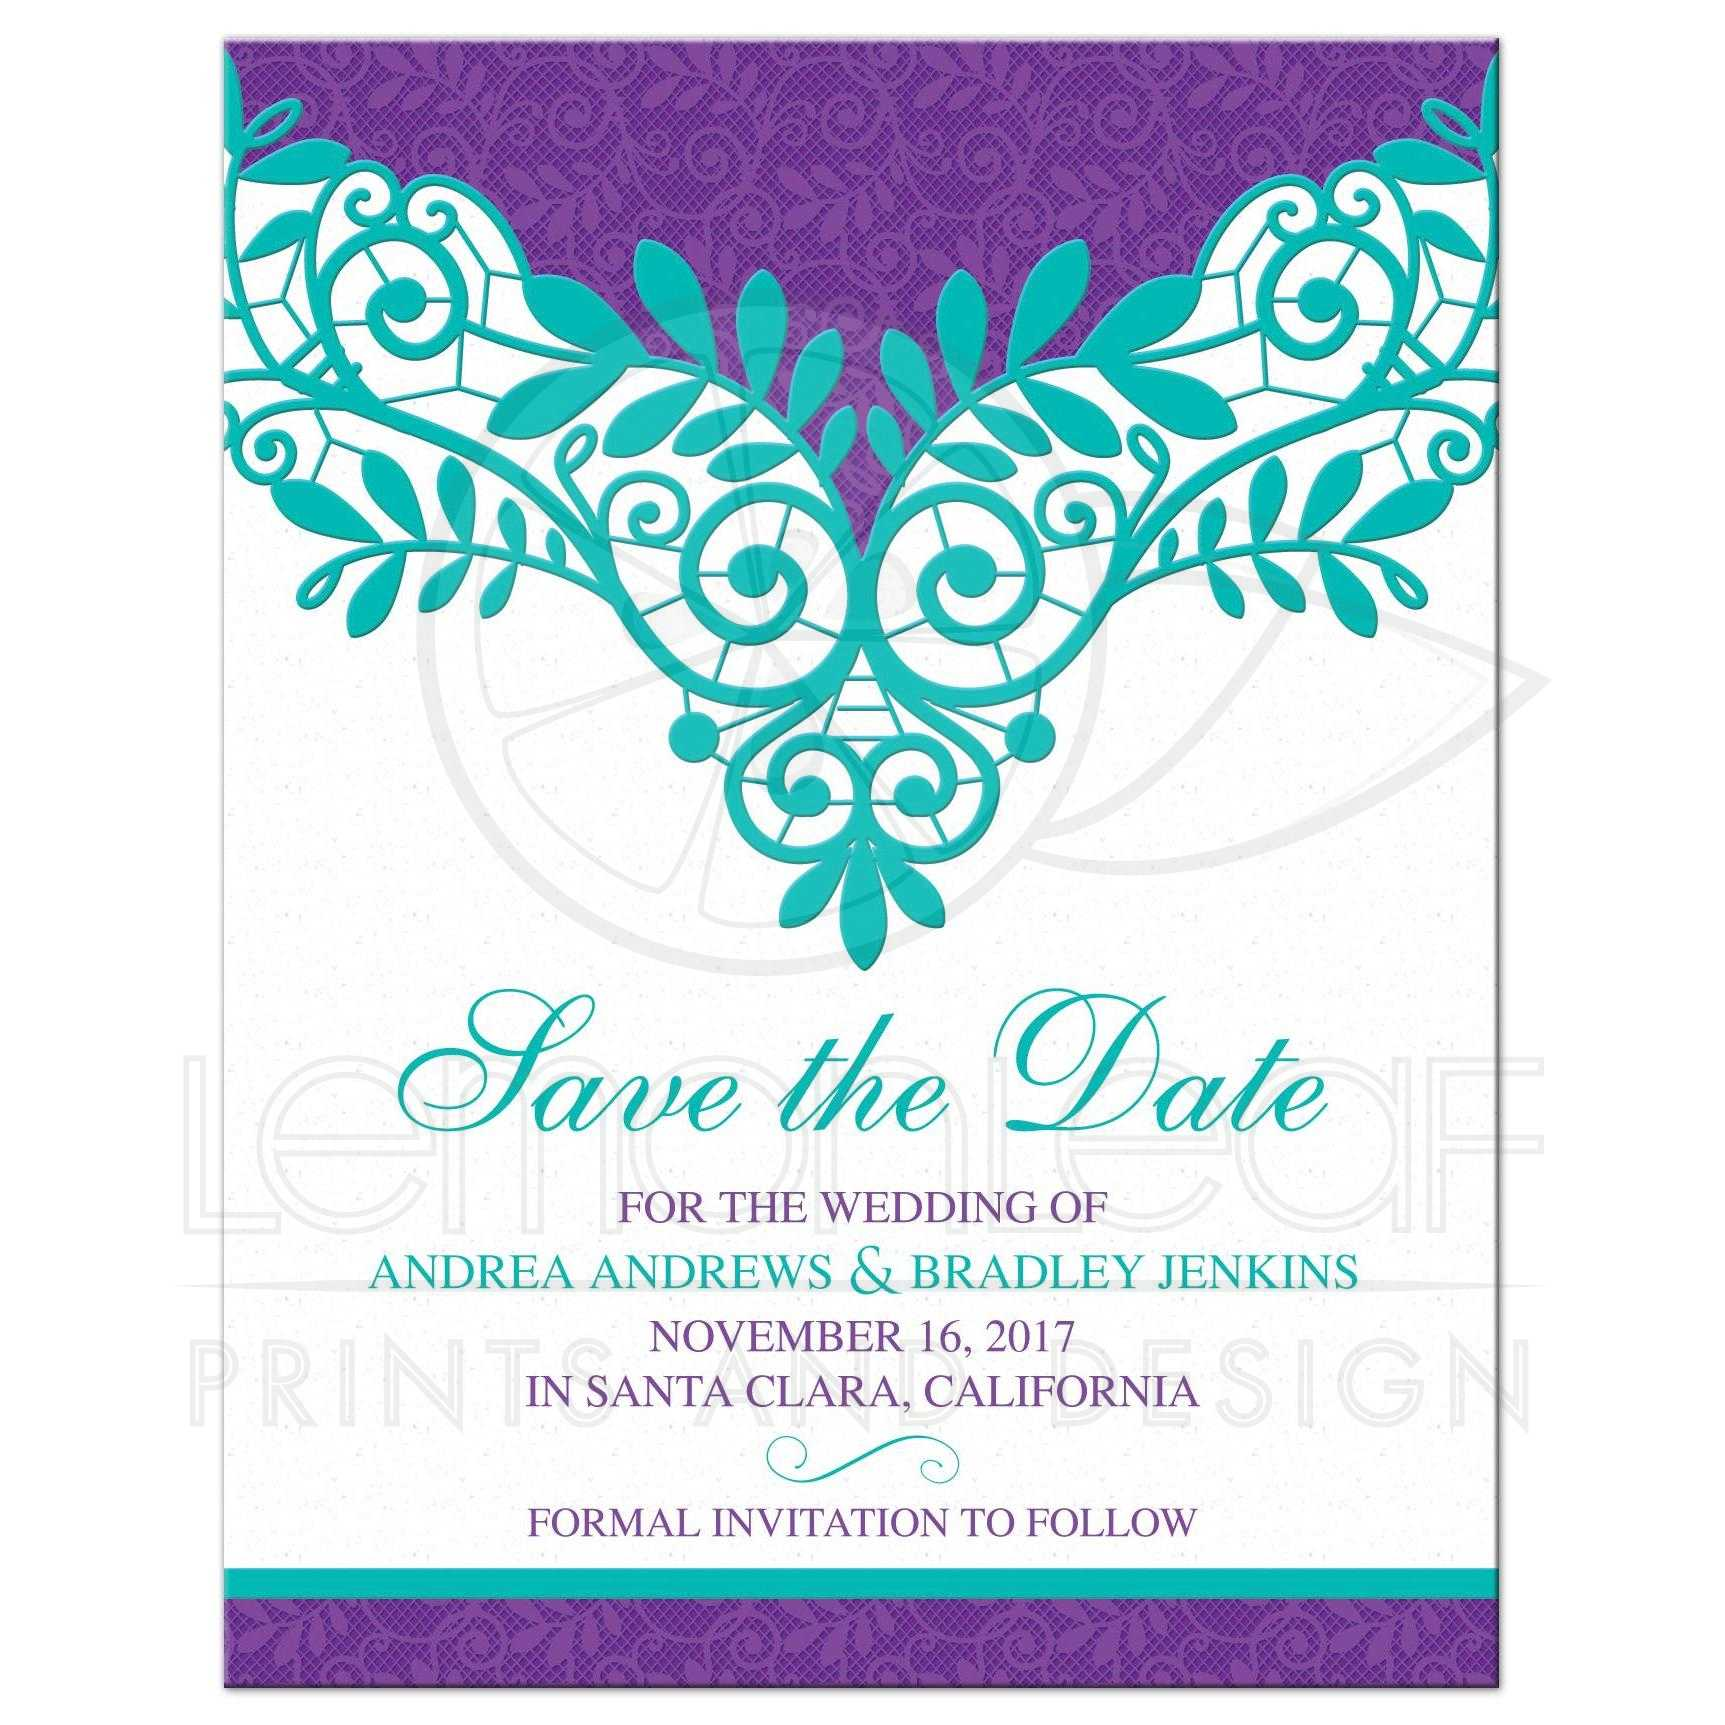 Teal Purple Lace Wedding Save The Date